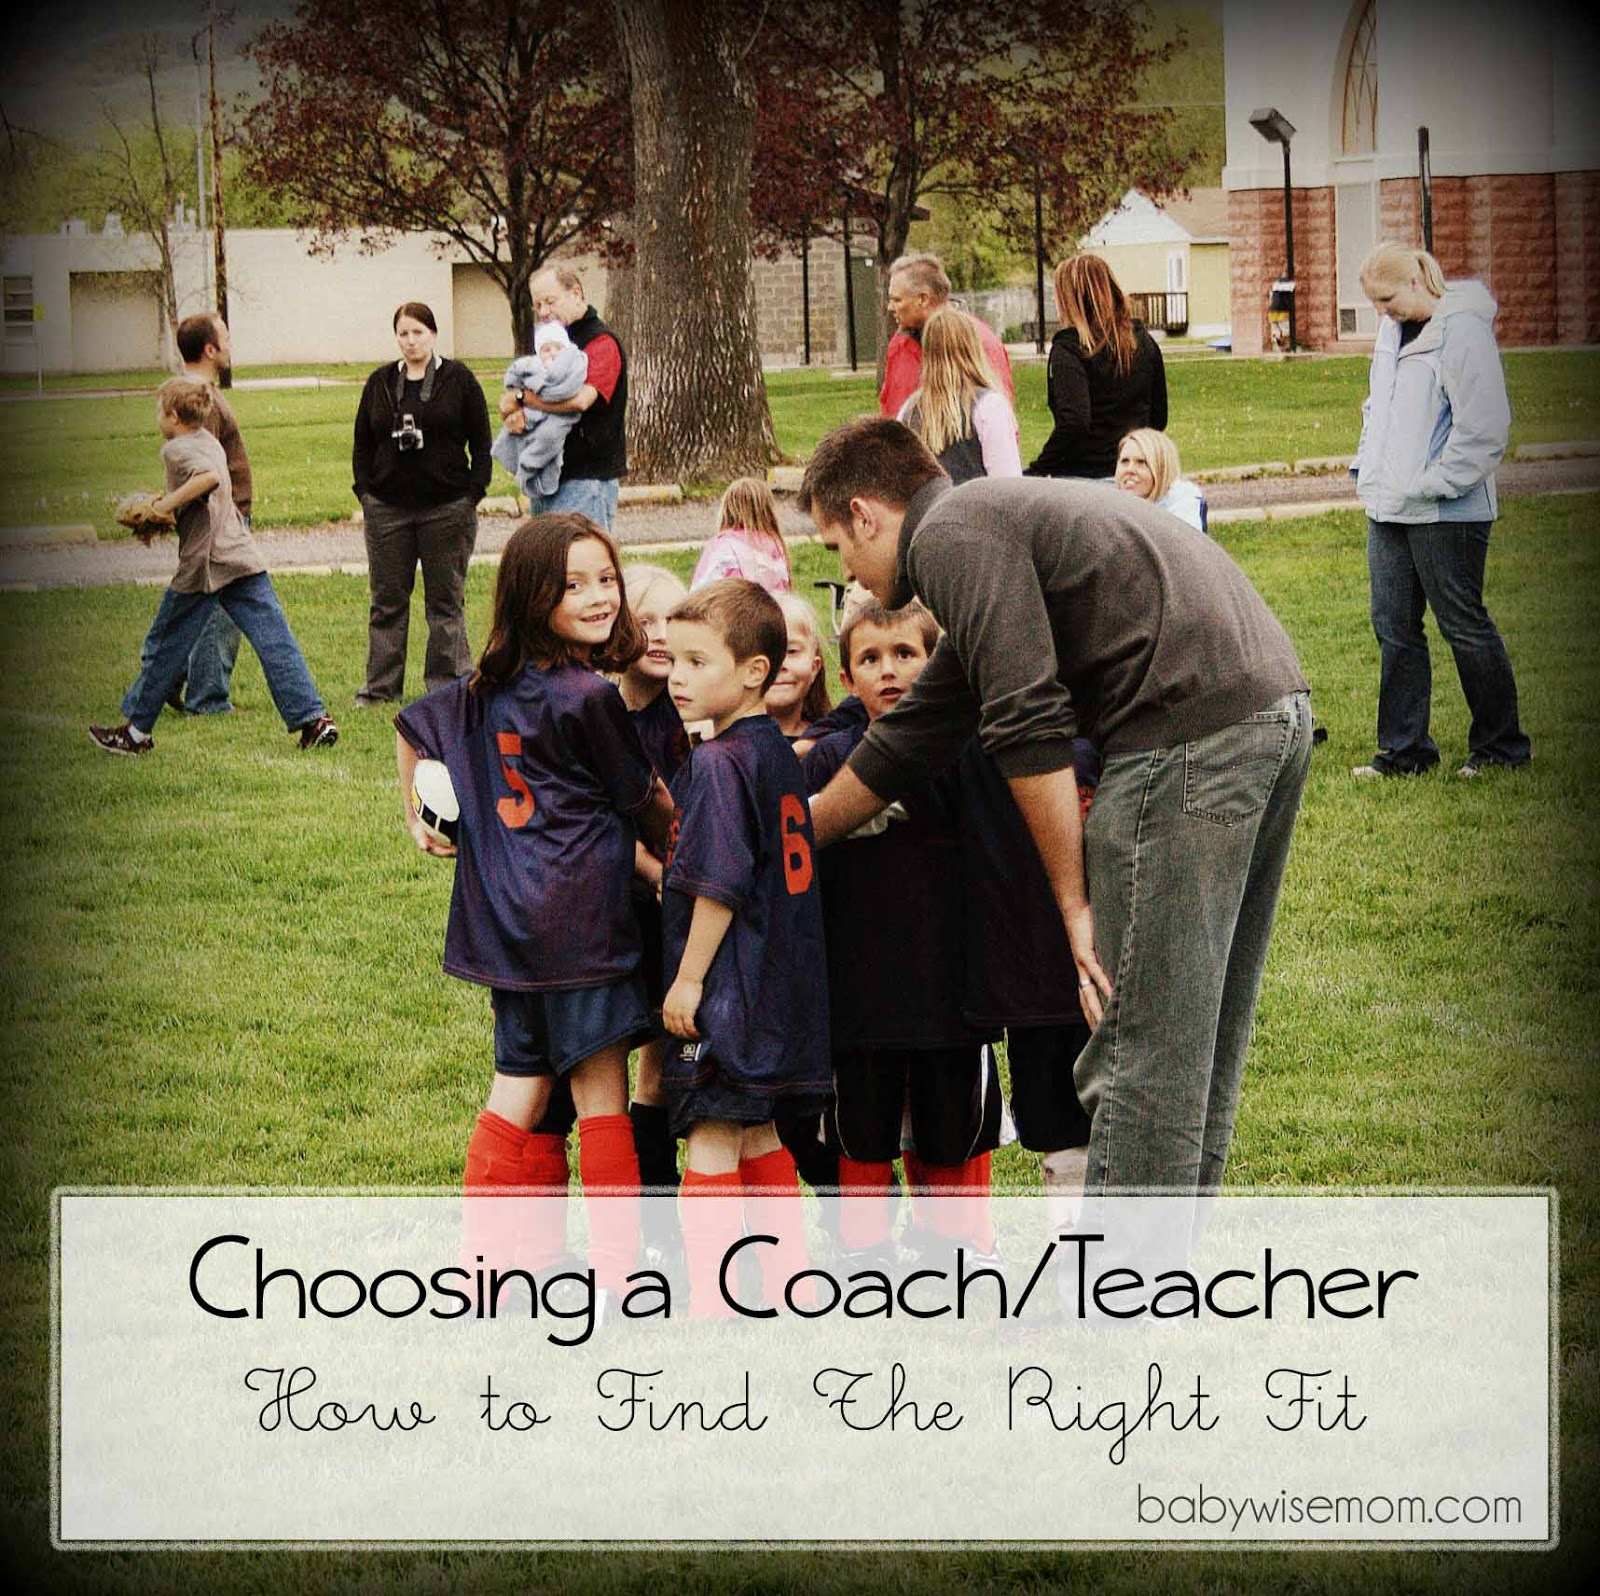 Choosing a Coach/Teacher…How to Find the Right Fit